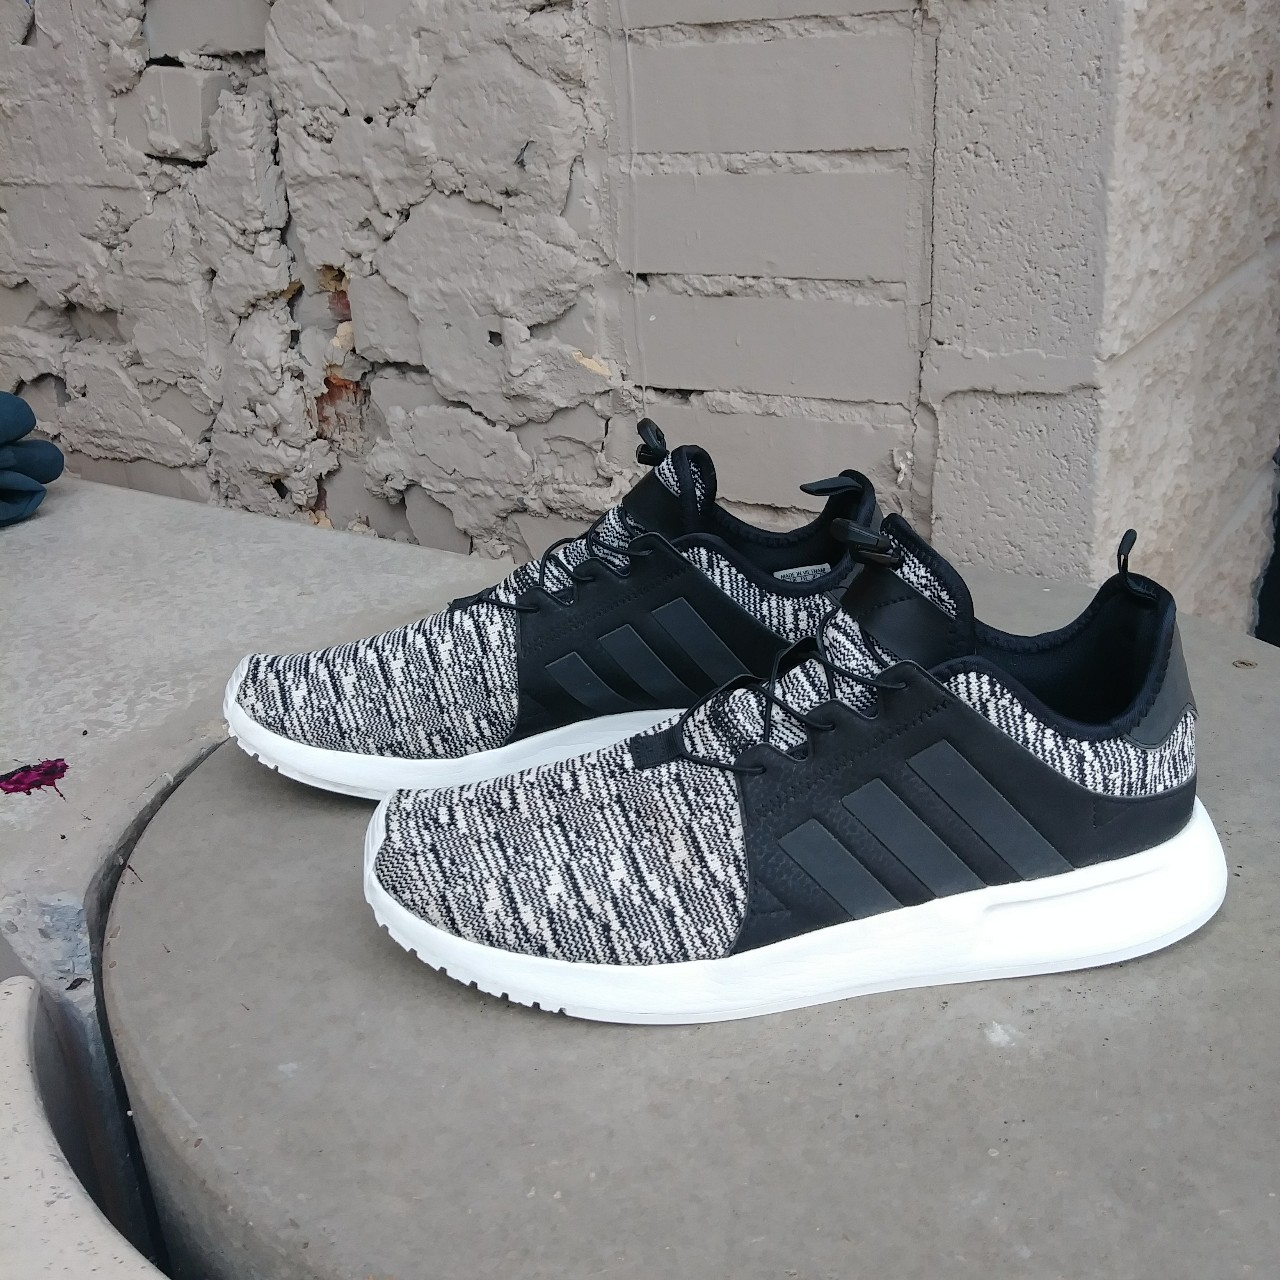 Adidas running shoes with reflective stripes for Depop